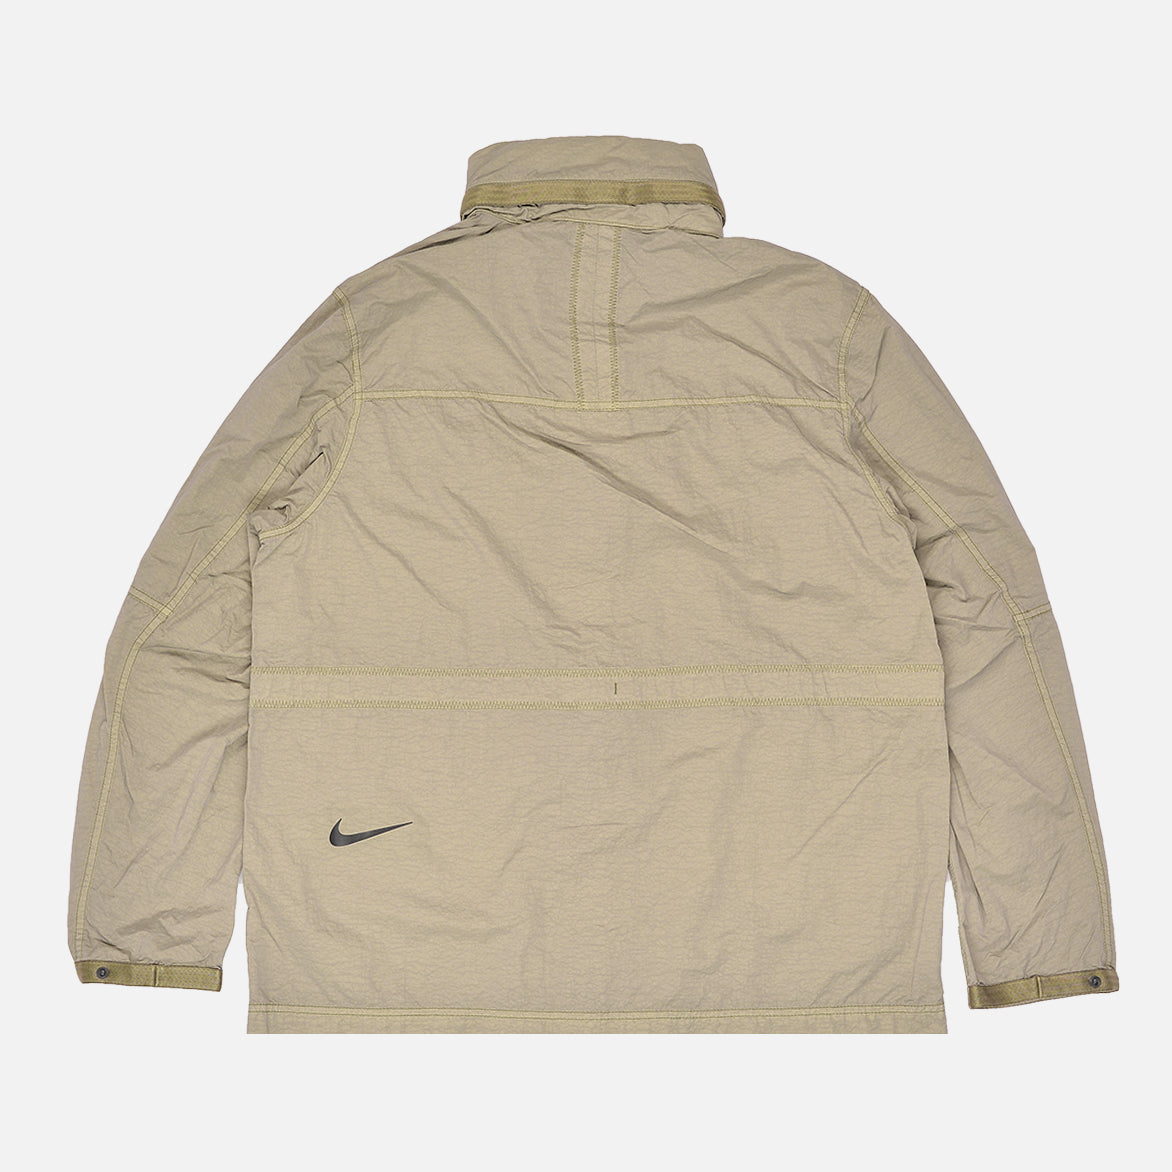 NSW TECH PACK JACKET - JADE STONE / BLACK